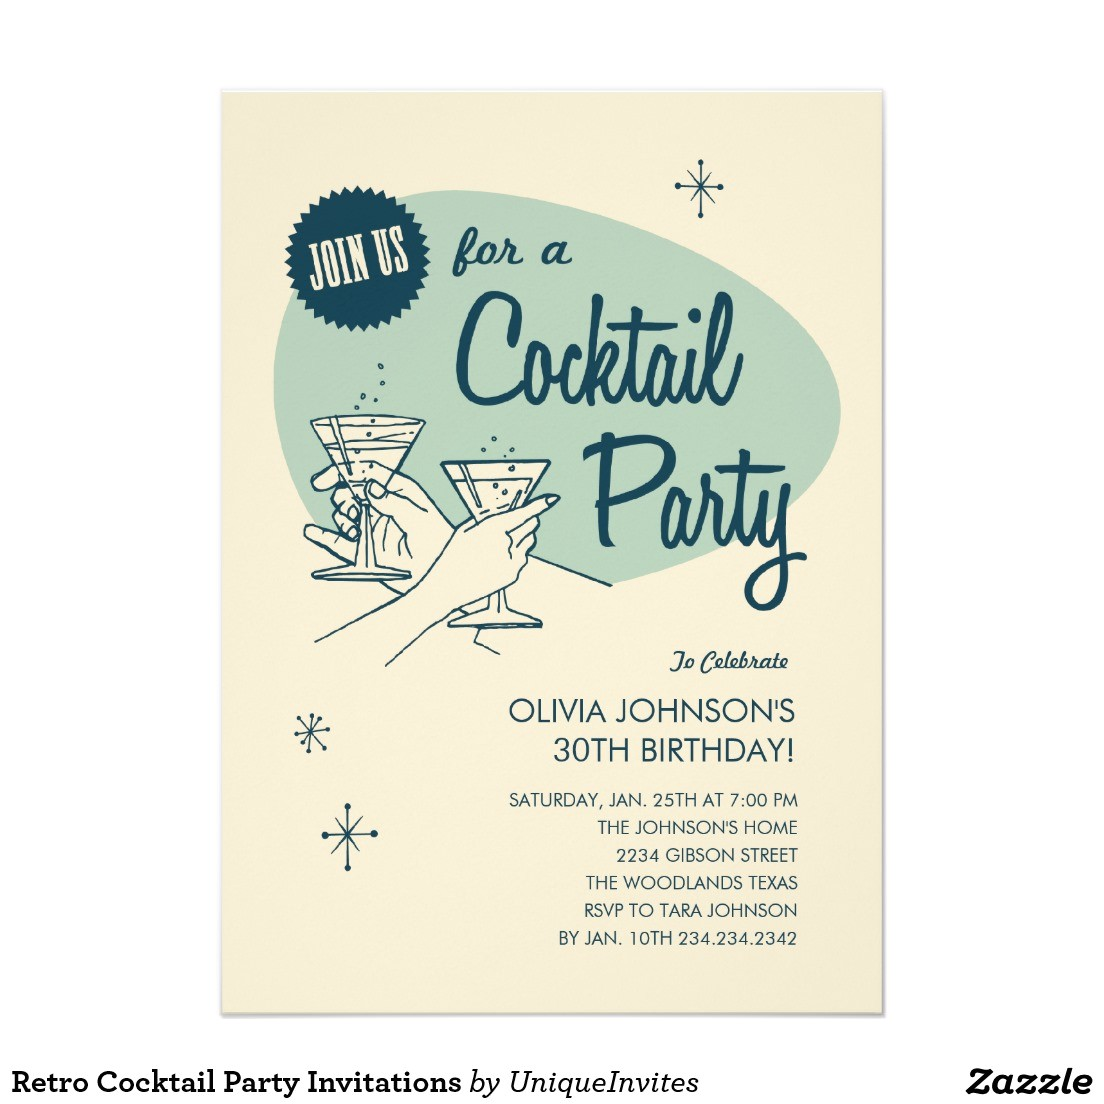 classic birthday cocktail party invitation card with beige background color and blue font color